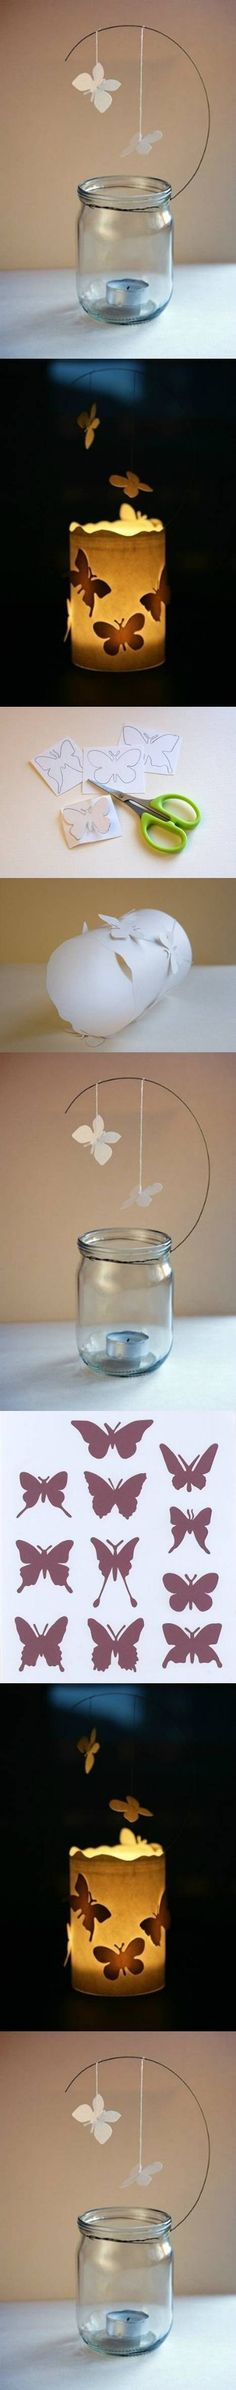 DIY Butterfly Candle Decor craft decor butterfly candle diy easy crafts craft ideas diy ideas home crafts diy crafts craft decor do it yourself craft decorations easy diy diy photos diy tutorials diy tutorial ideas Jar Crafts, Cute Crafts, Diy And Crafts, Crafts For Kids, Arts And Crafts, Diy Papillon, Borboleta Diy, Diy Projects To Try, Craft Projects